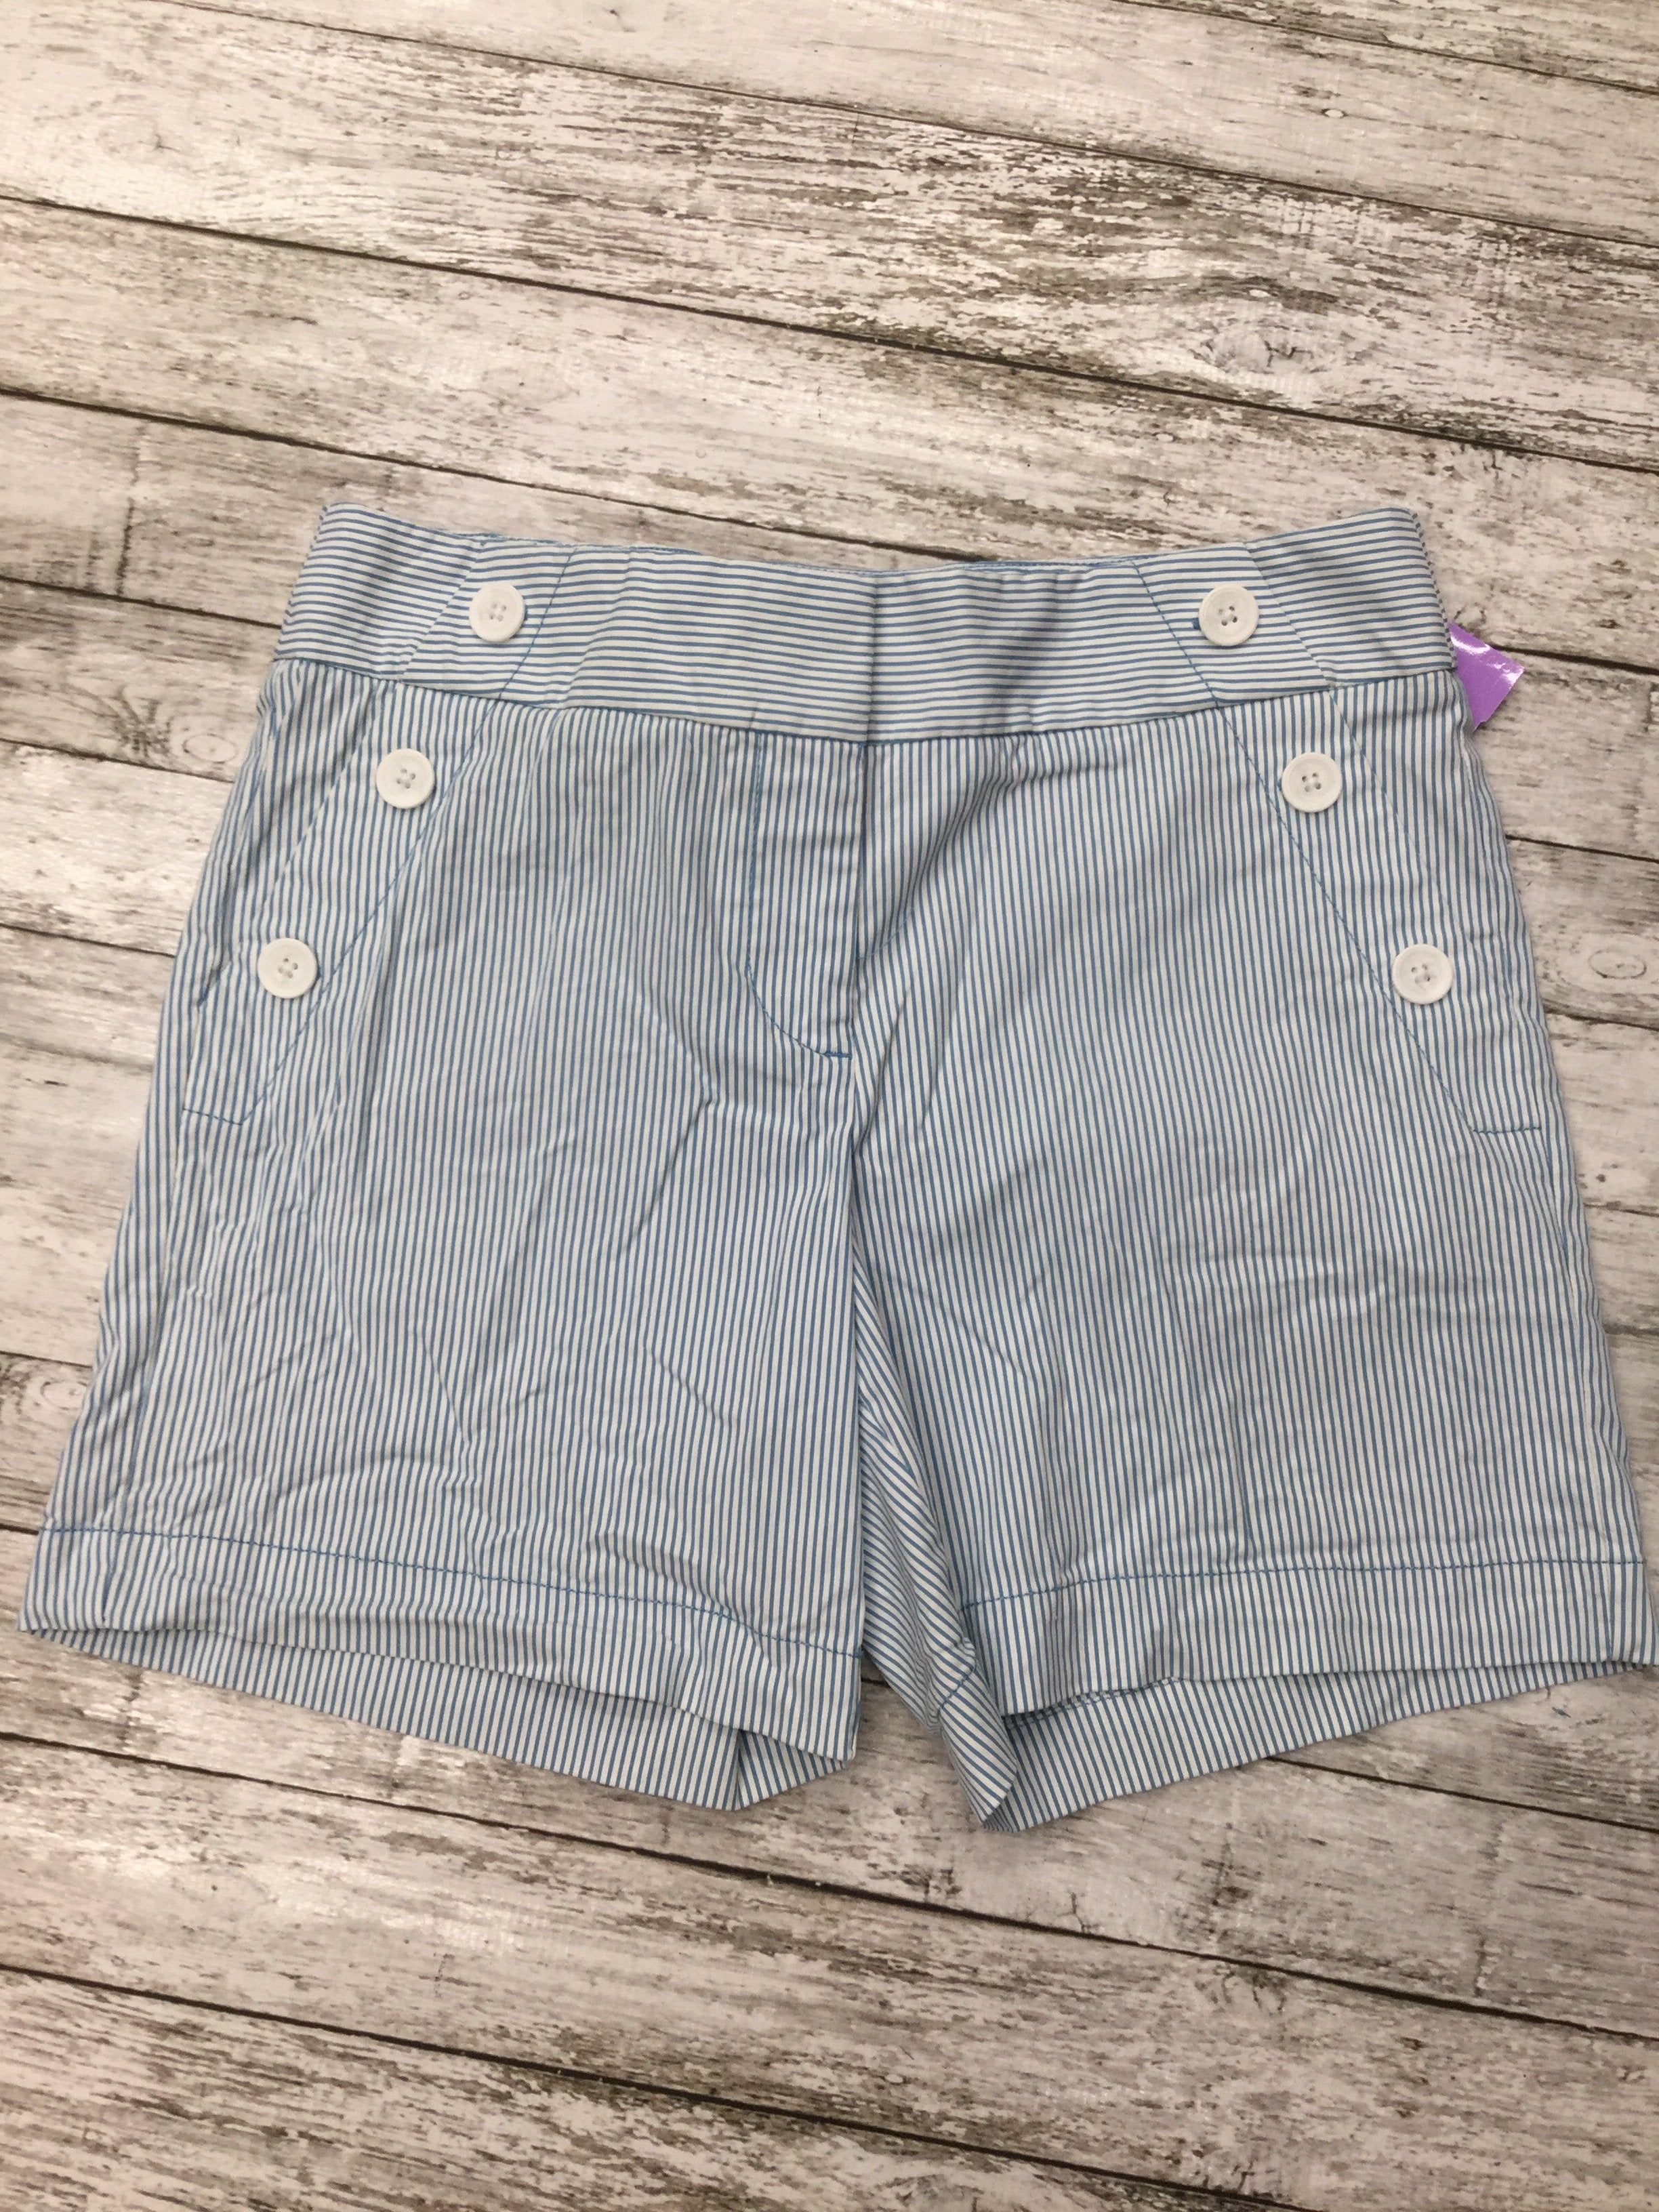 Primary Photo - brand: ann taylor loft , style: shorts , color: blue white , size: 4 , sku: 126-3290-74962